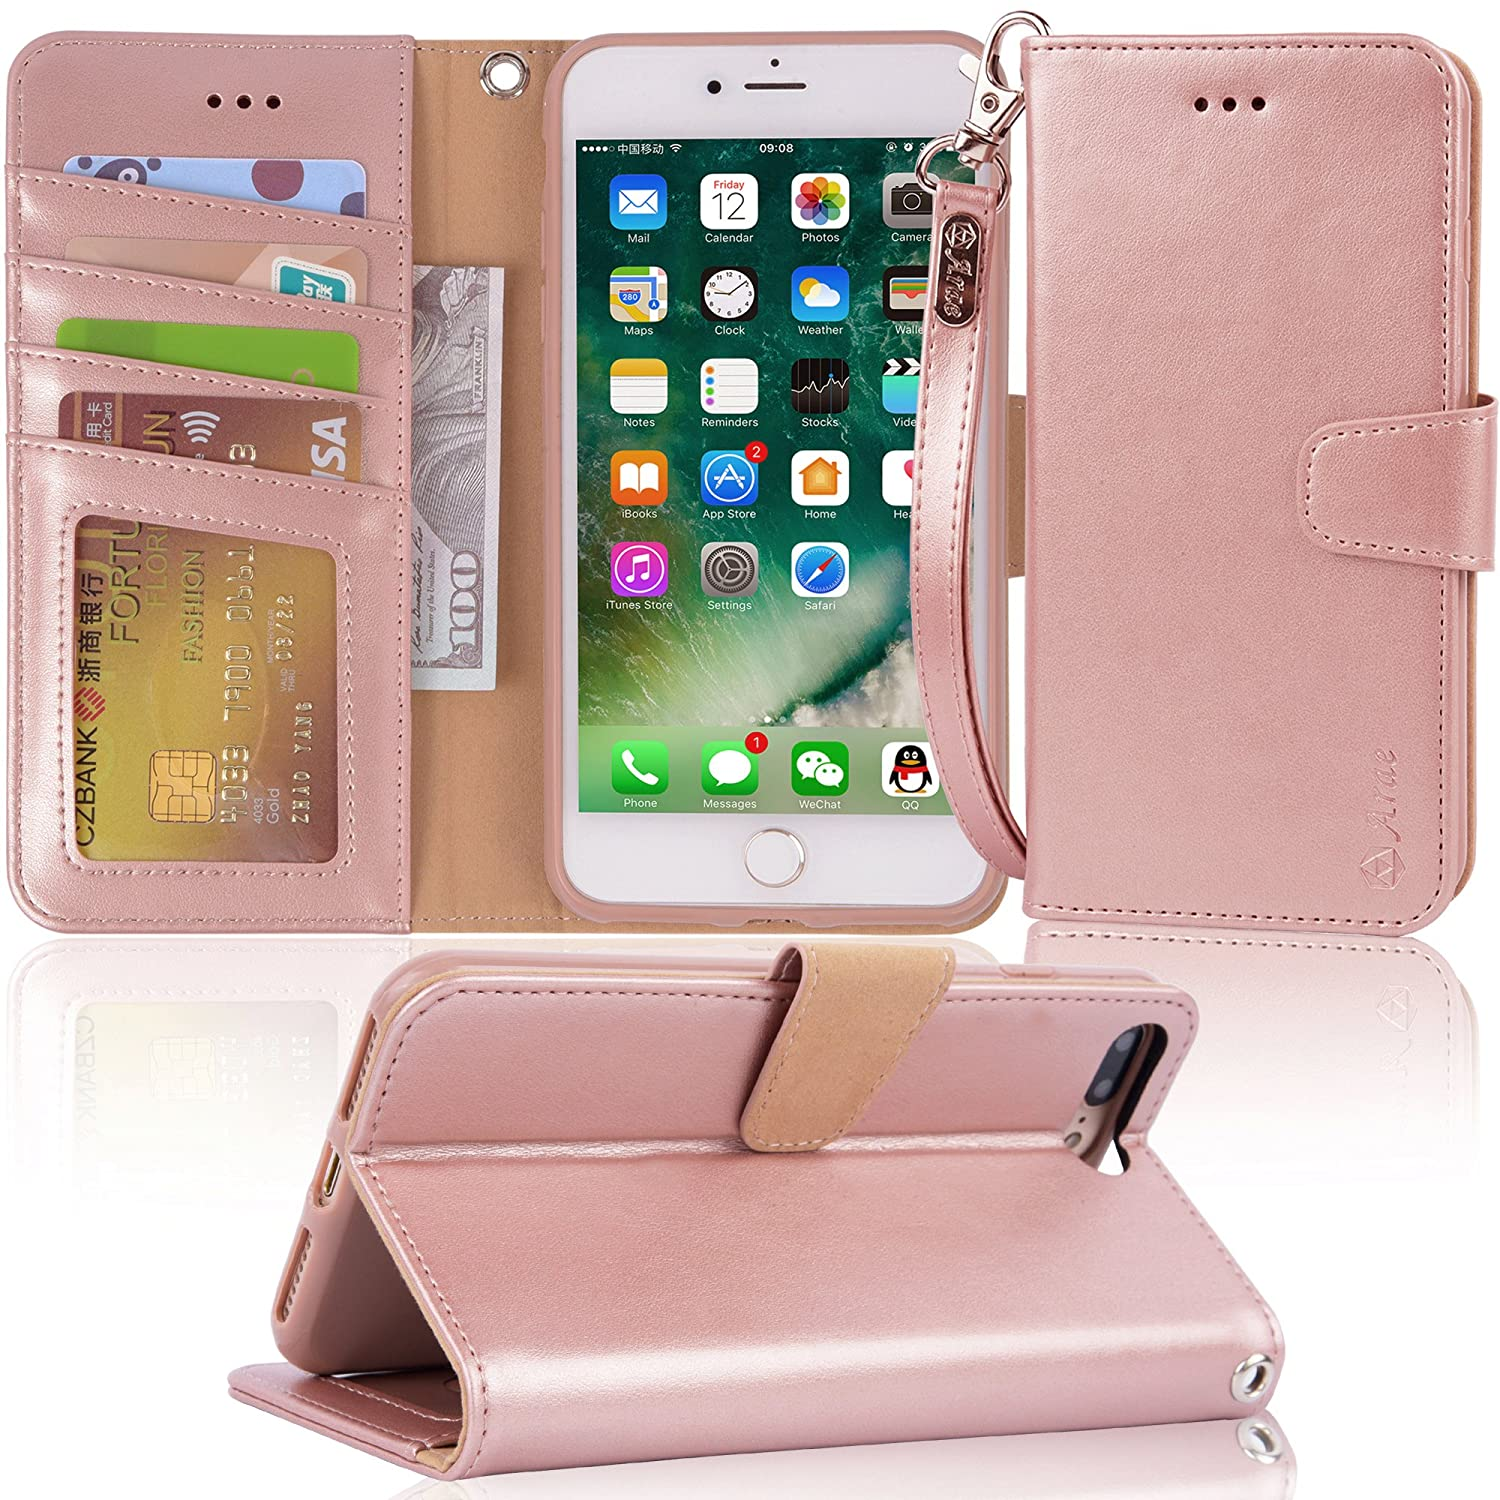 Arae Case For iPhone 7 plus / iPhone 8 plus, Premium PU leather wallet Case with Kickstand and Flip Cover for iPhone 7 Plus (2016) / iPhone 8 Plus ...